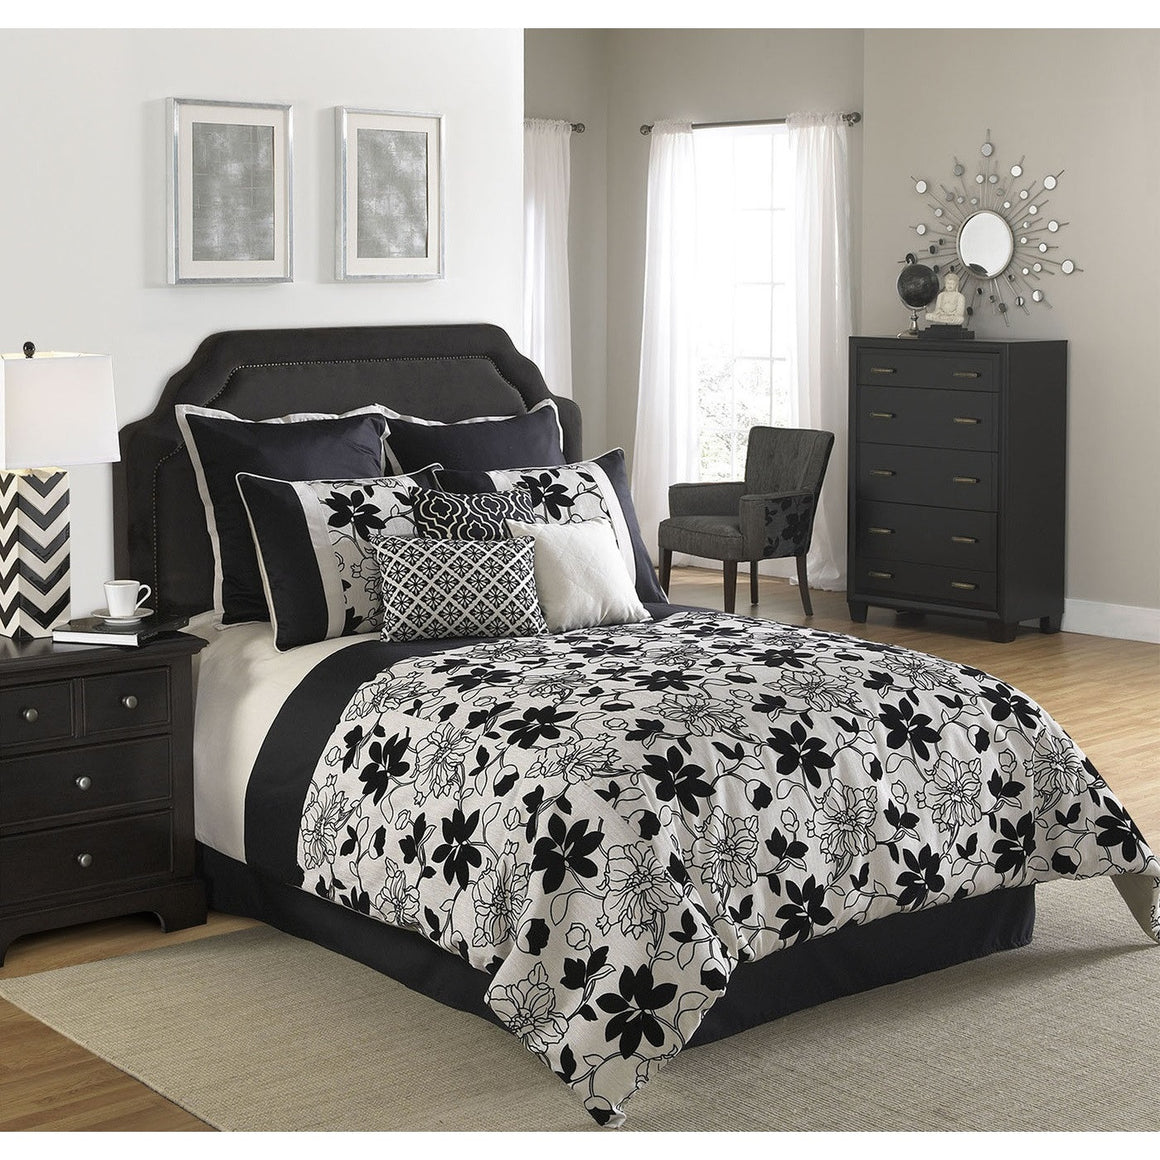 Ebony and Ivory Comforter Bed Set